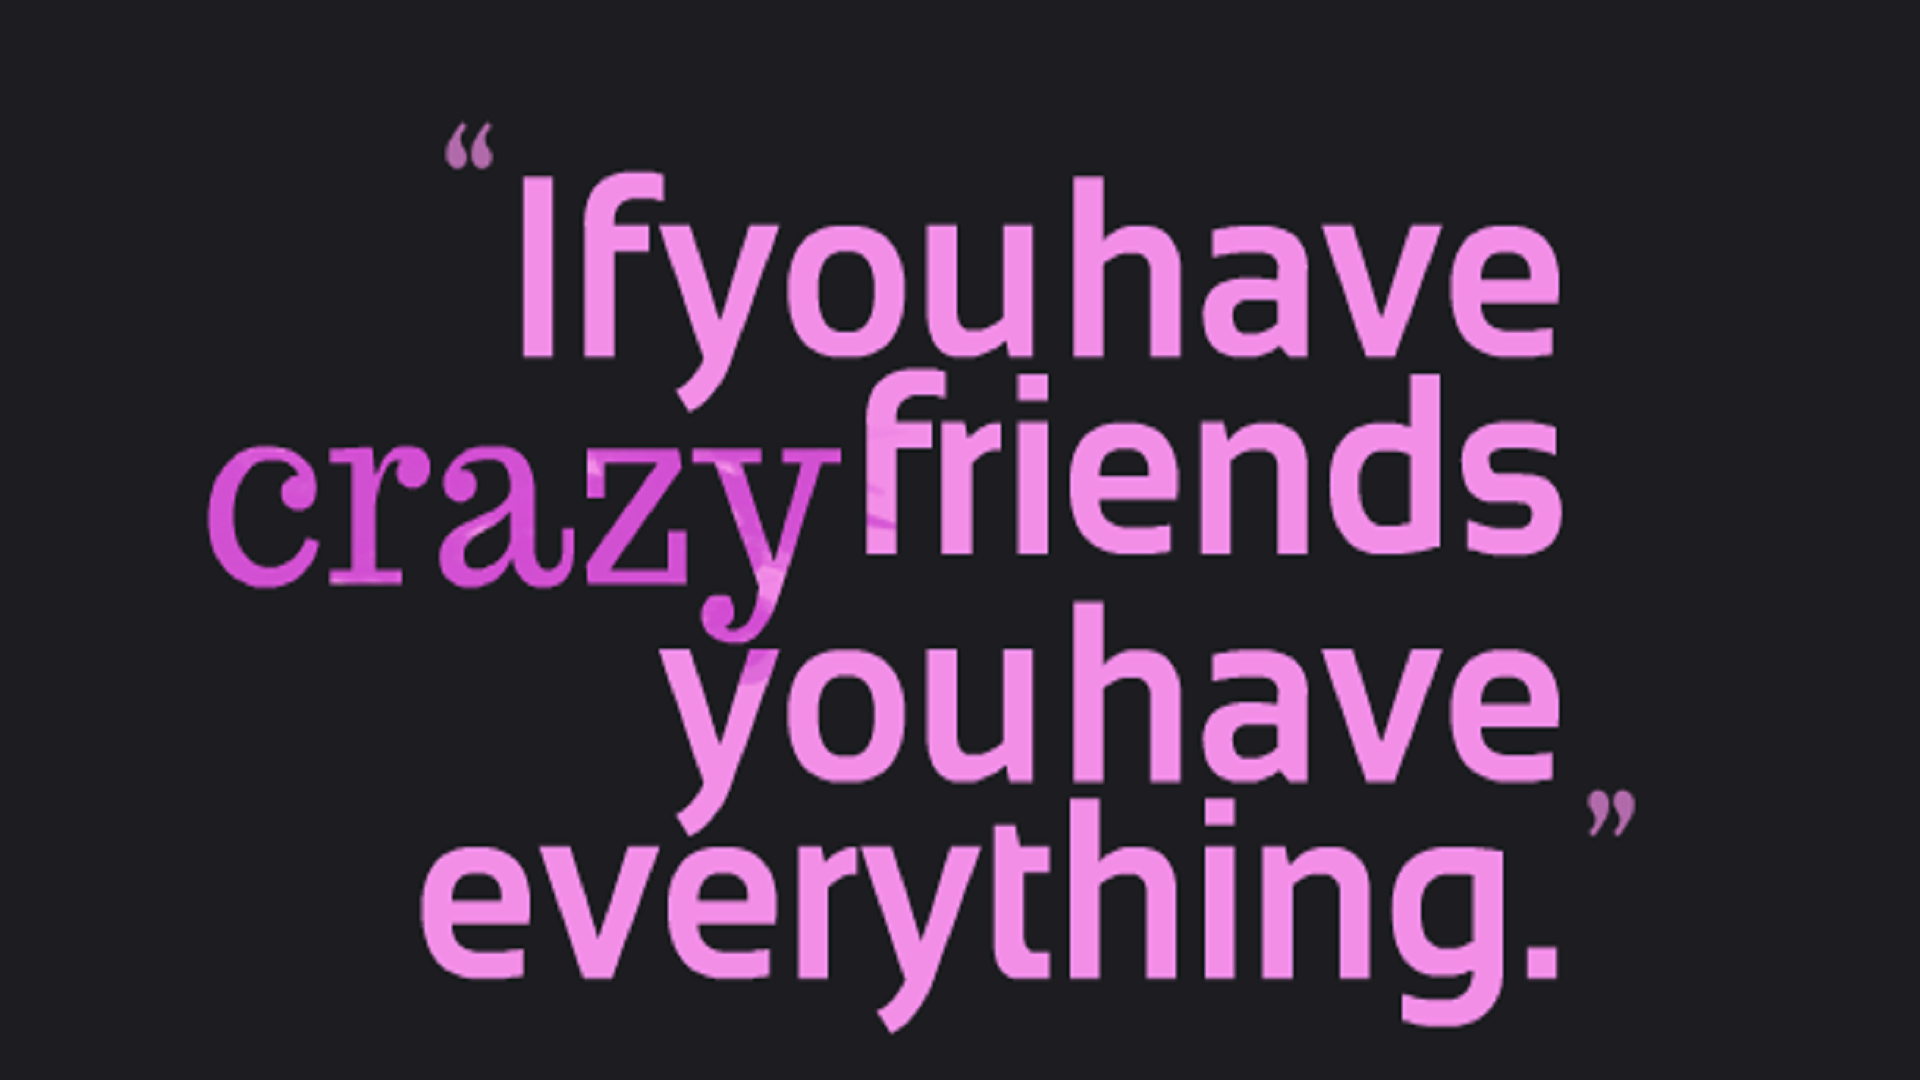 funny friendship quotes in english   HD Wallpaper 1920x1080